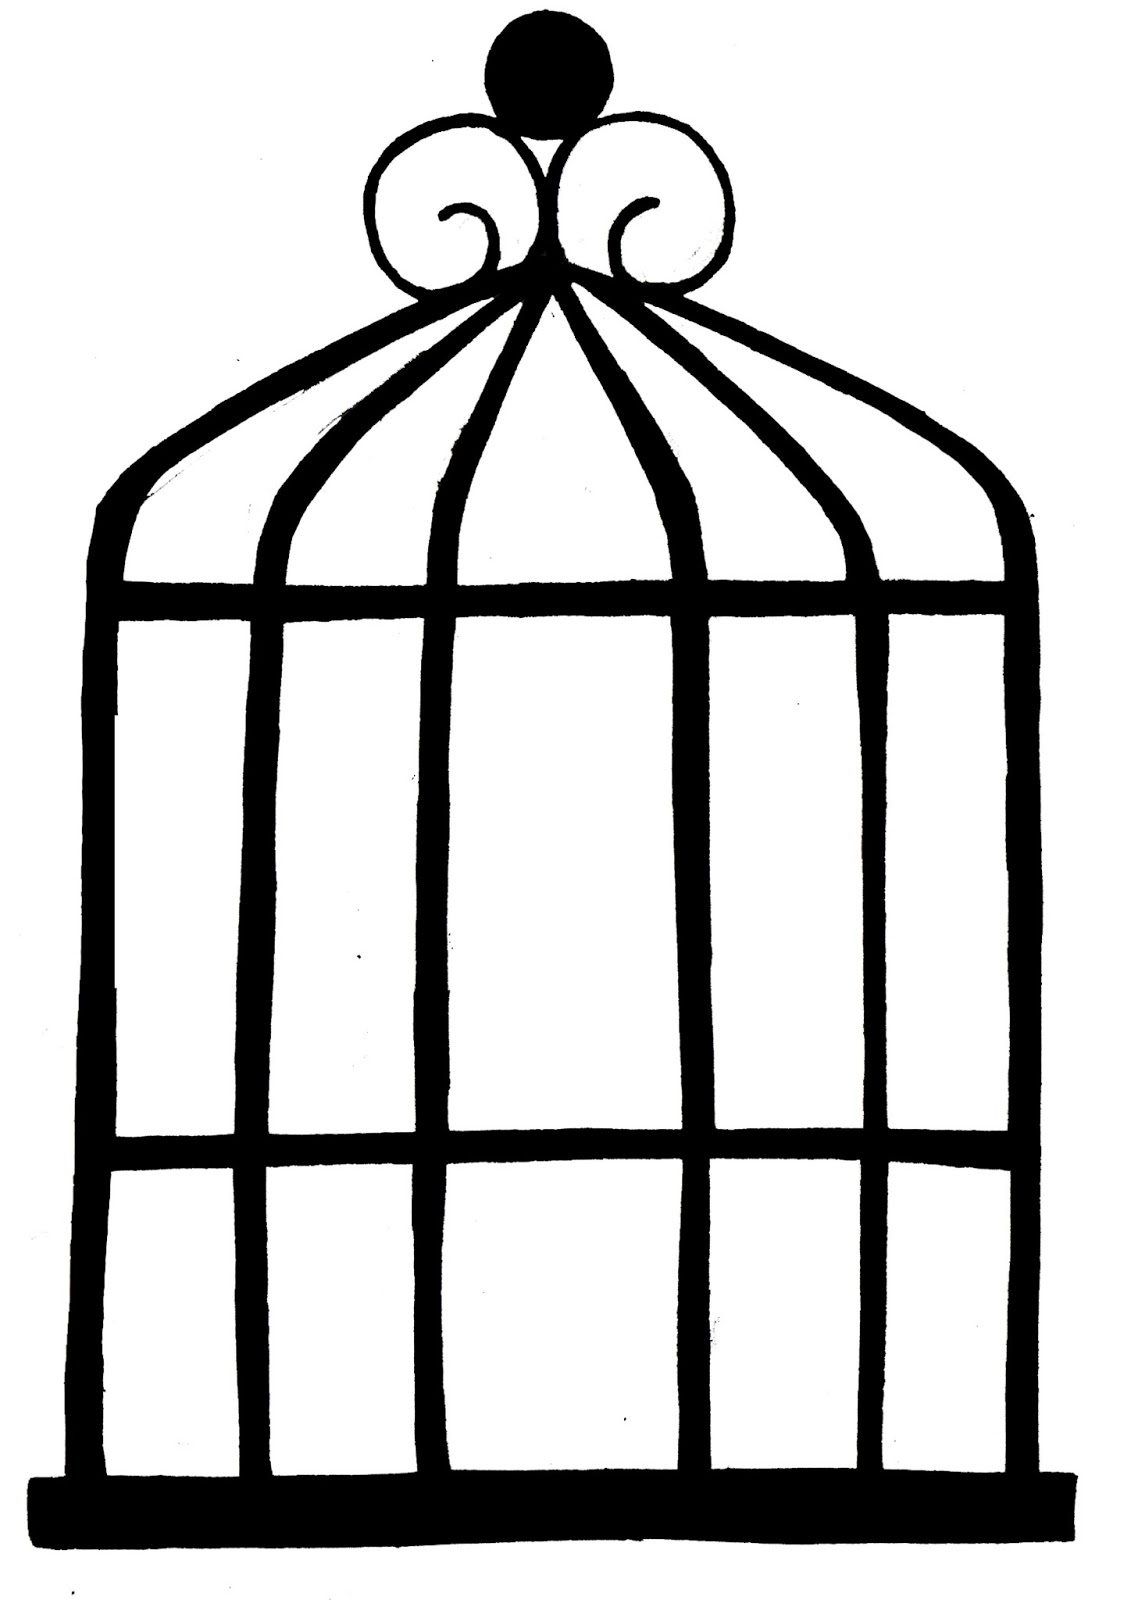 Cage clipart & Pictures Simple Images Becuo